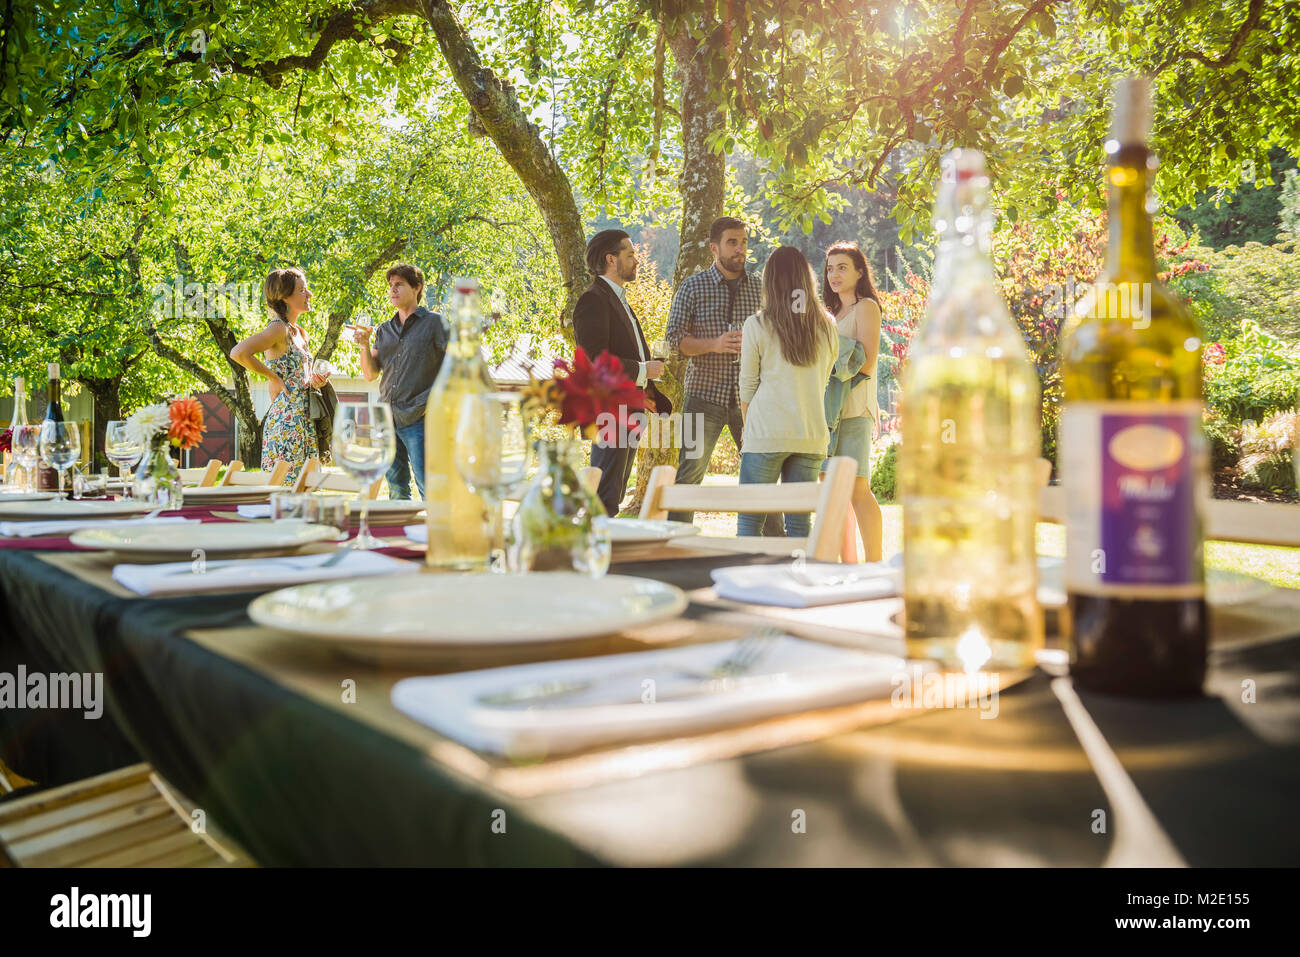 Wine bottles on table at party outdoors - Stock Image